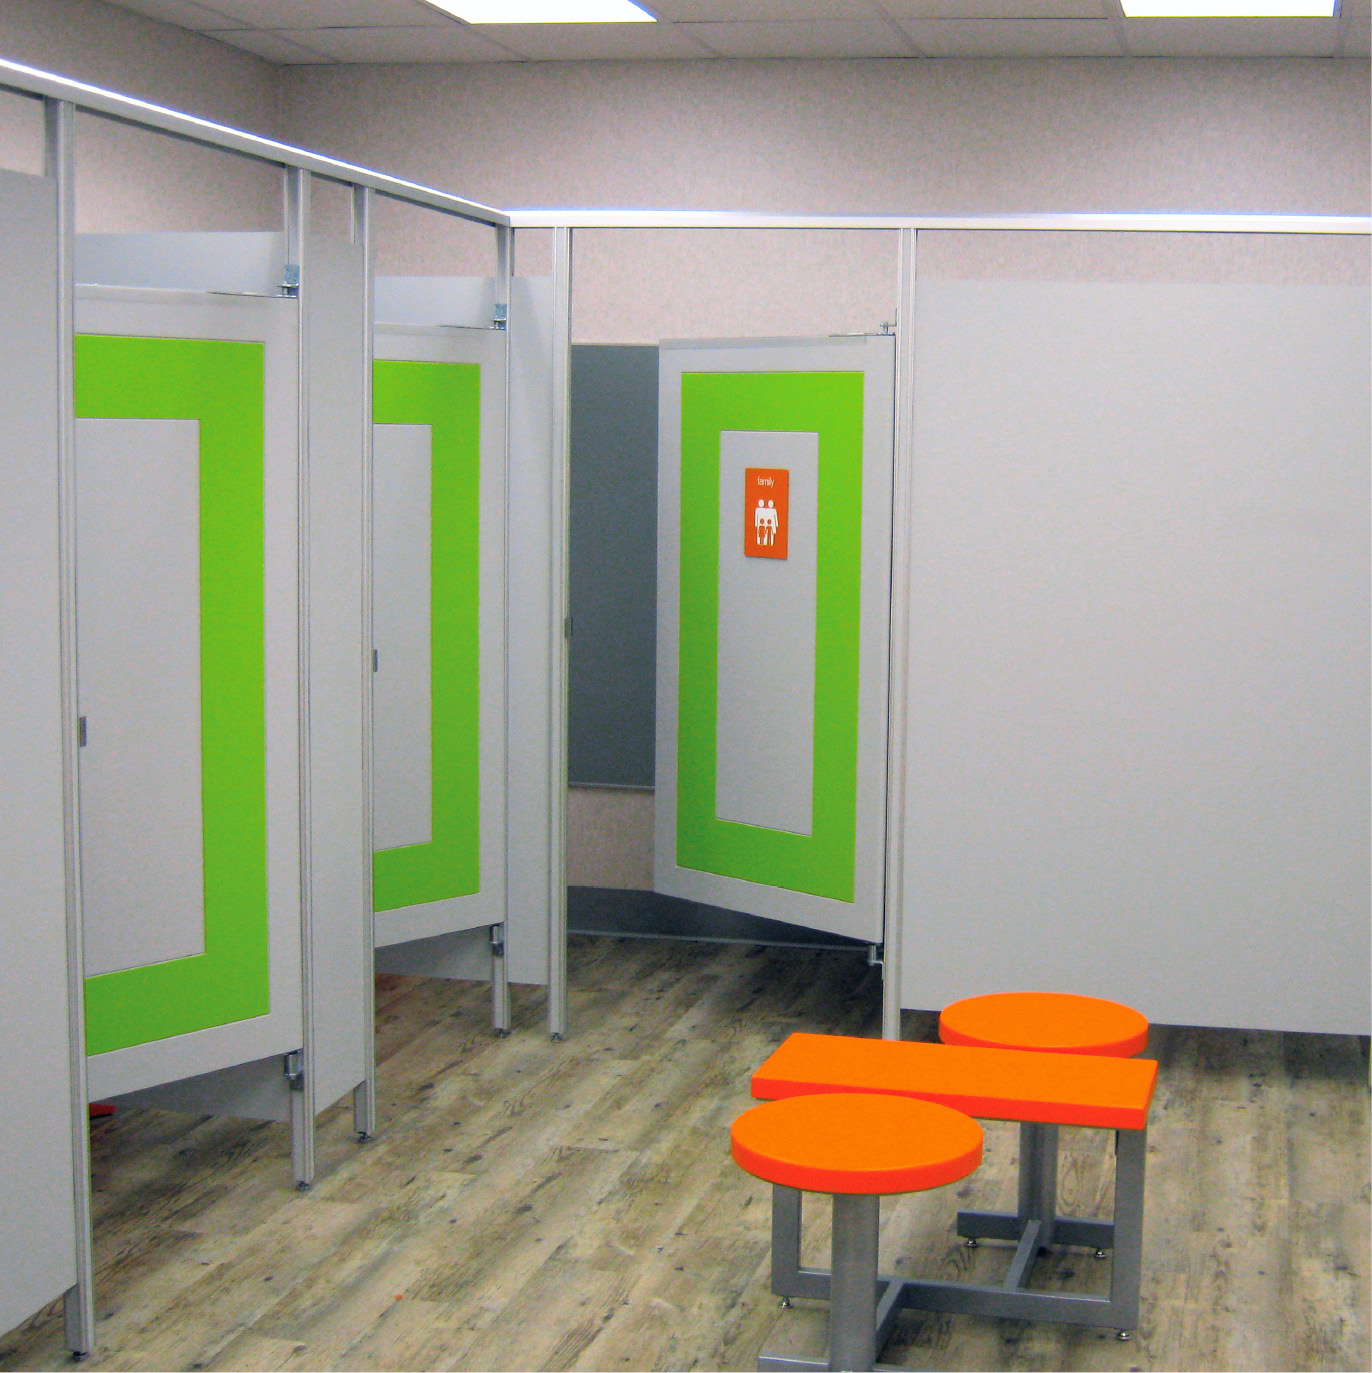 Rooms Store: Retail Wall Panels, Retail Fixtures